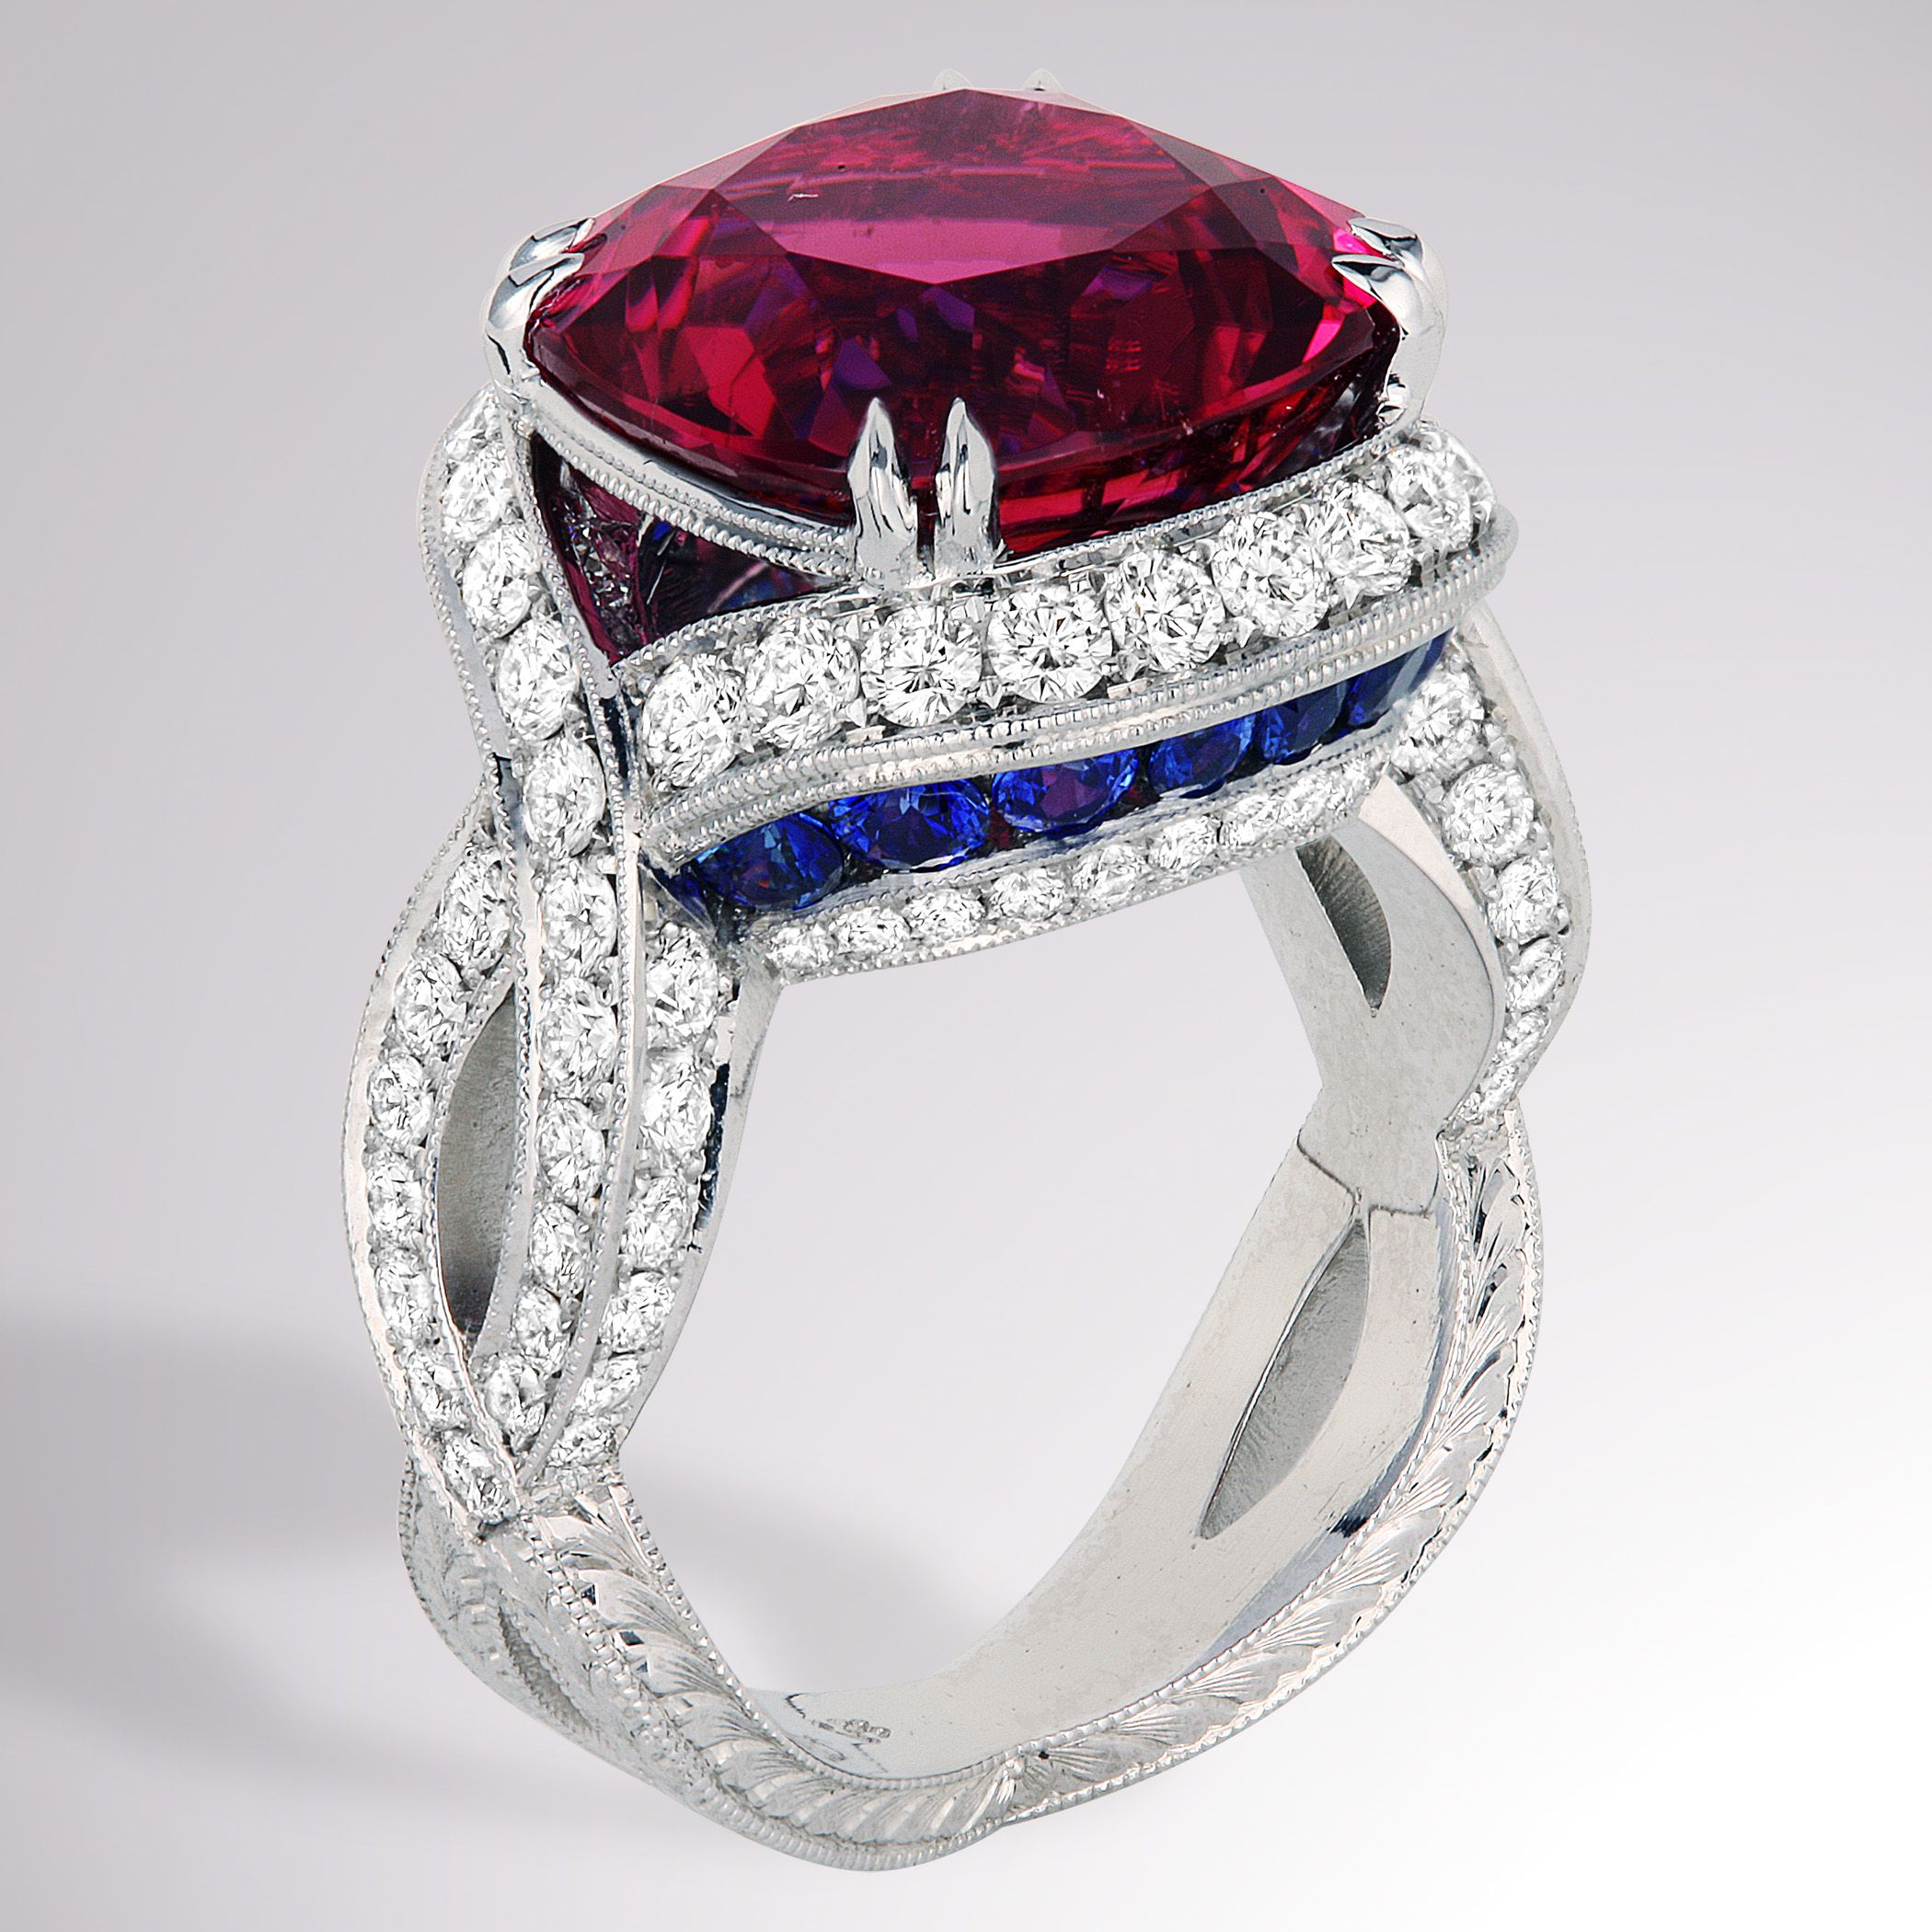 This colorful ring is a sure way to accessorize your